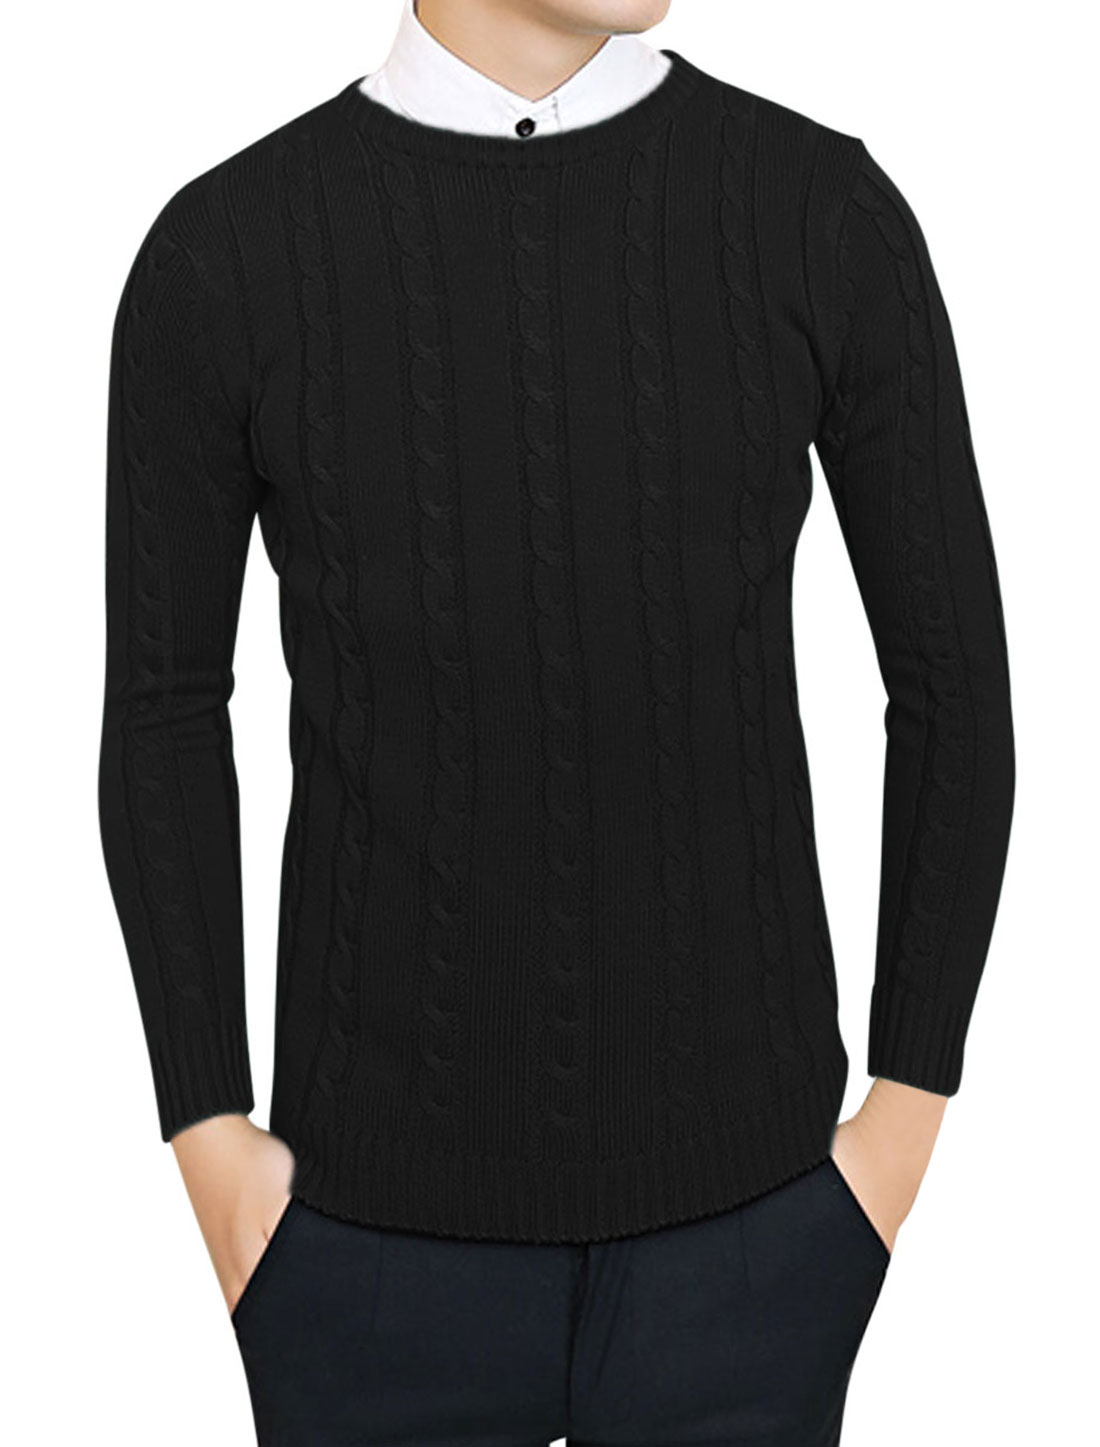 Men Crew Neck Long Sleeve Ribbed Cuff Fitting Sweater Black S